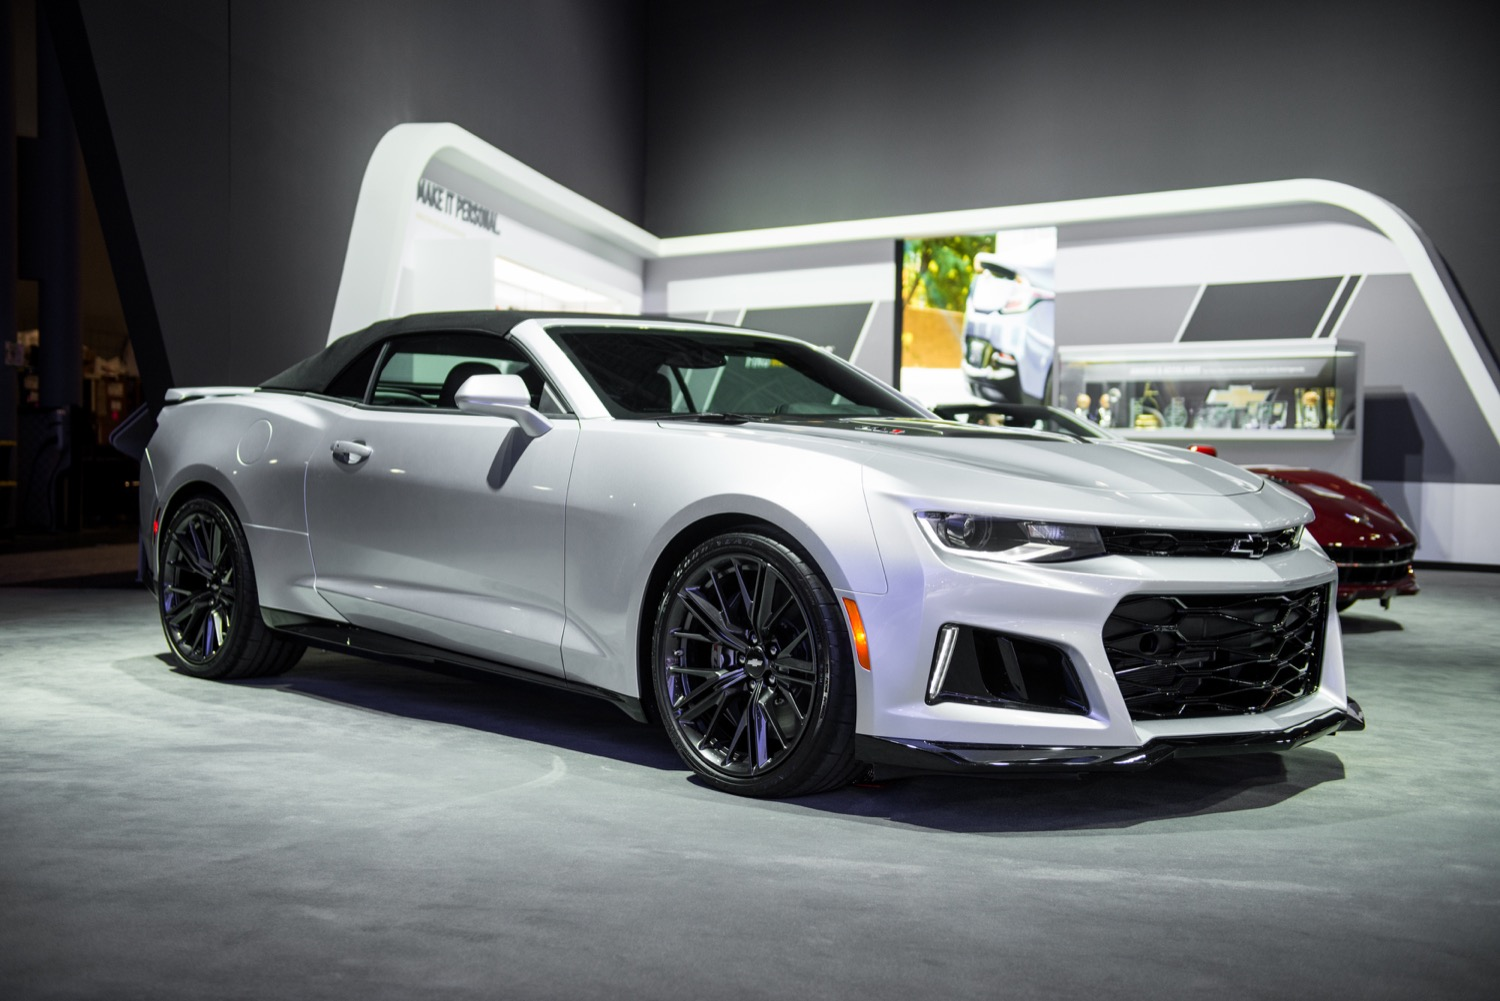 2017 Chevrolet Camaro Convertible Concept Photo 1